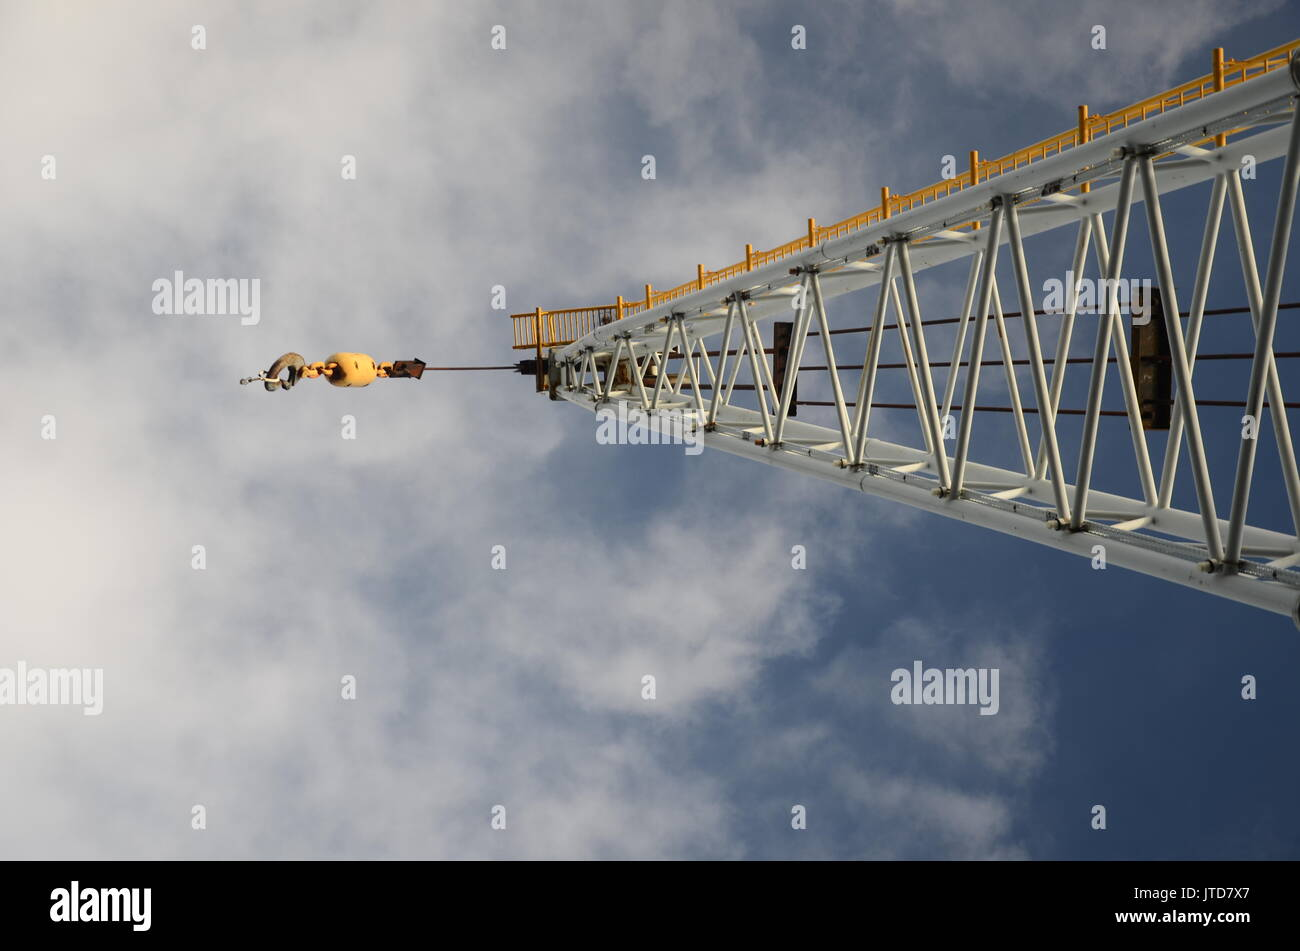 Hydraulic Crane Lift Stockfotos & Hydraulic Crane Lift Bilder - Alamy